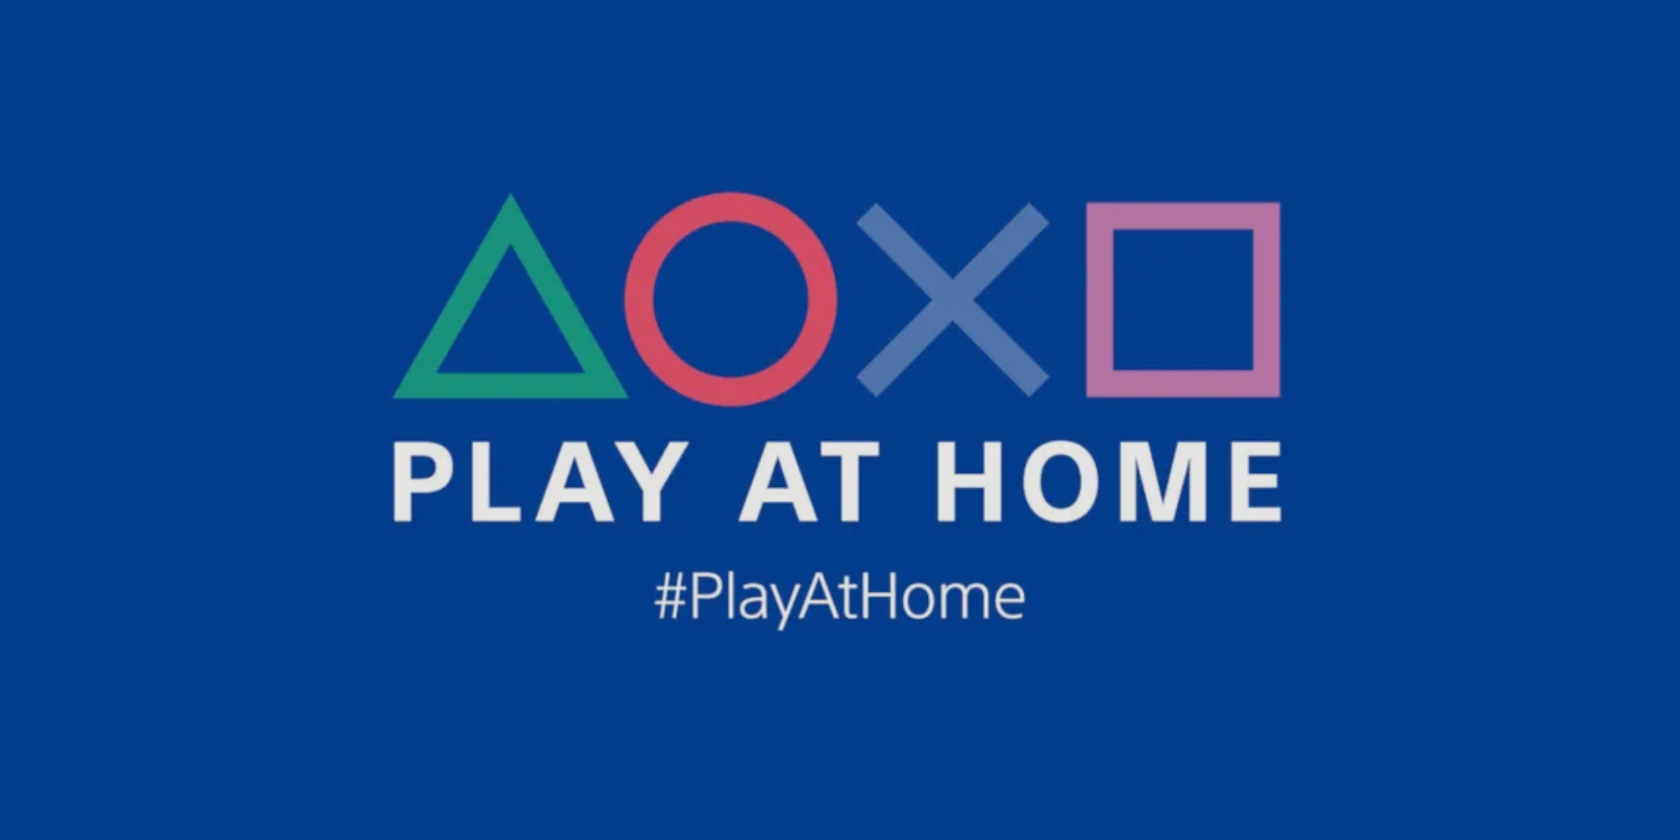 How to Get Free PS4 and PS5 Games Through Play At Home